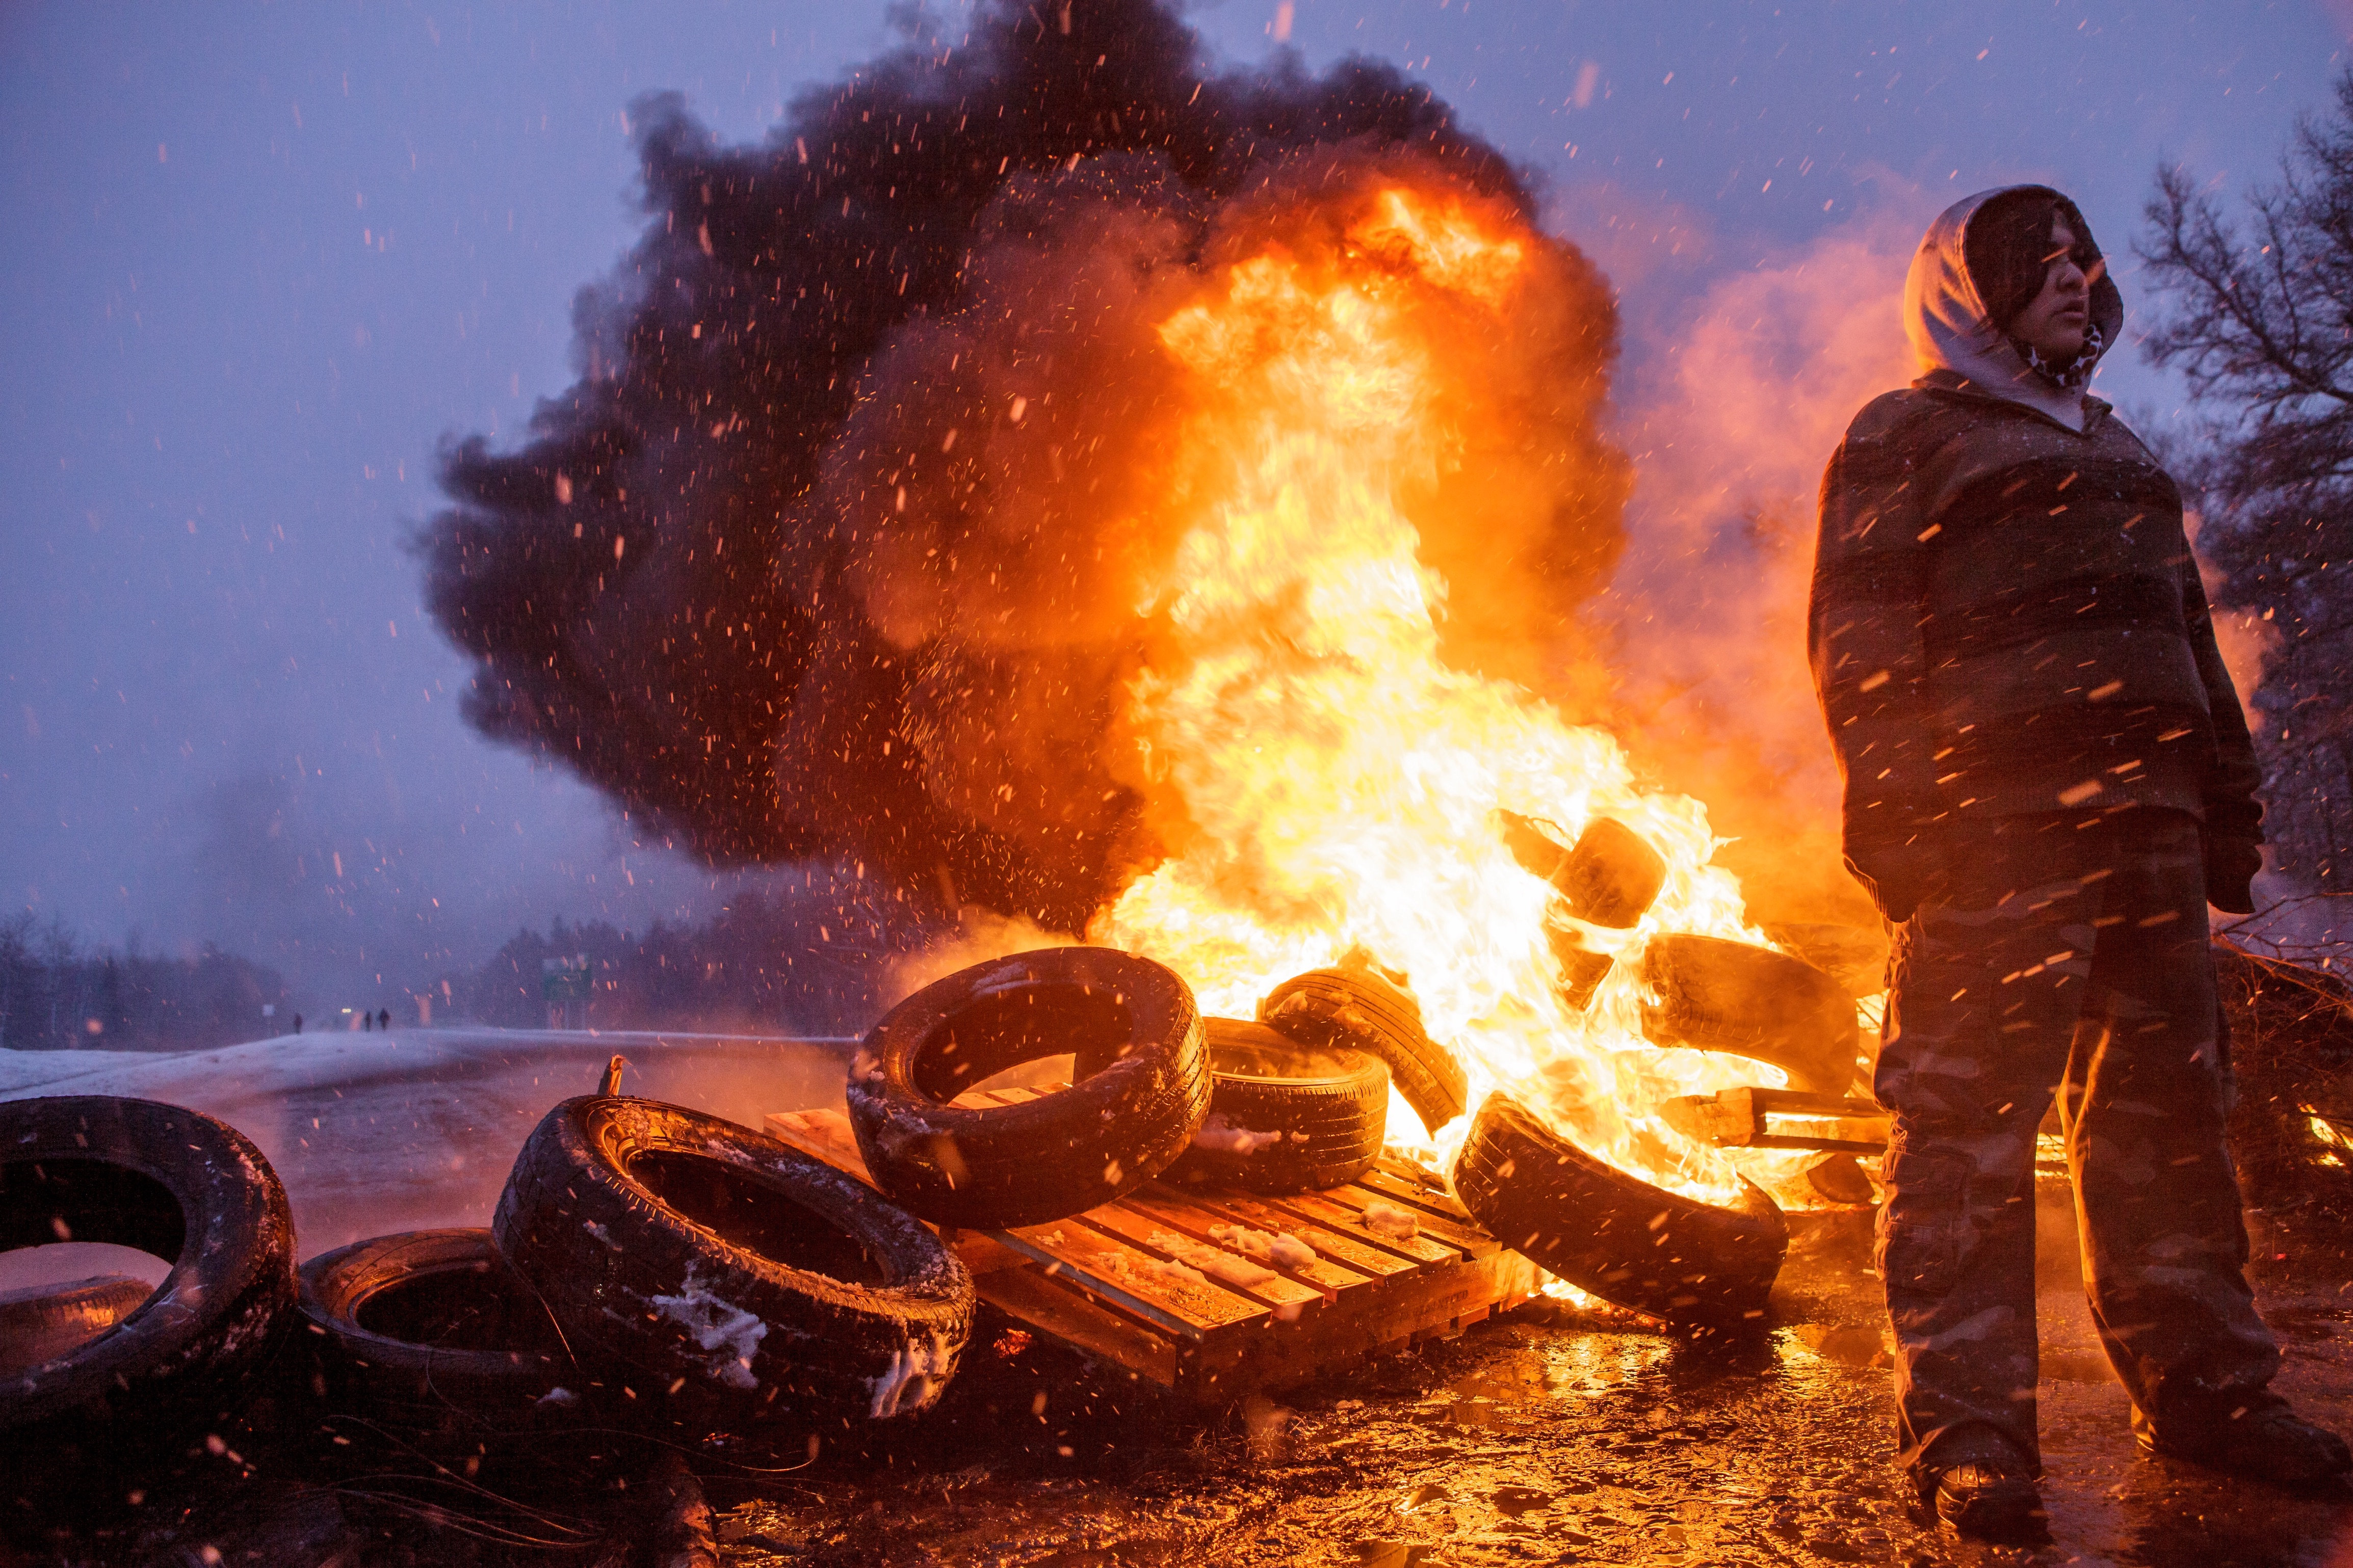 Photo of a person standing in front of burning tires in the documentary Water Warriors